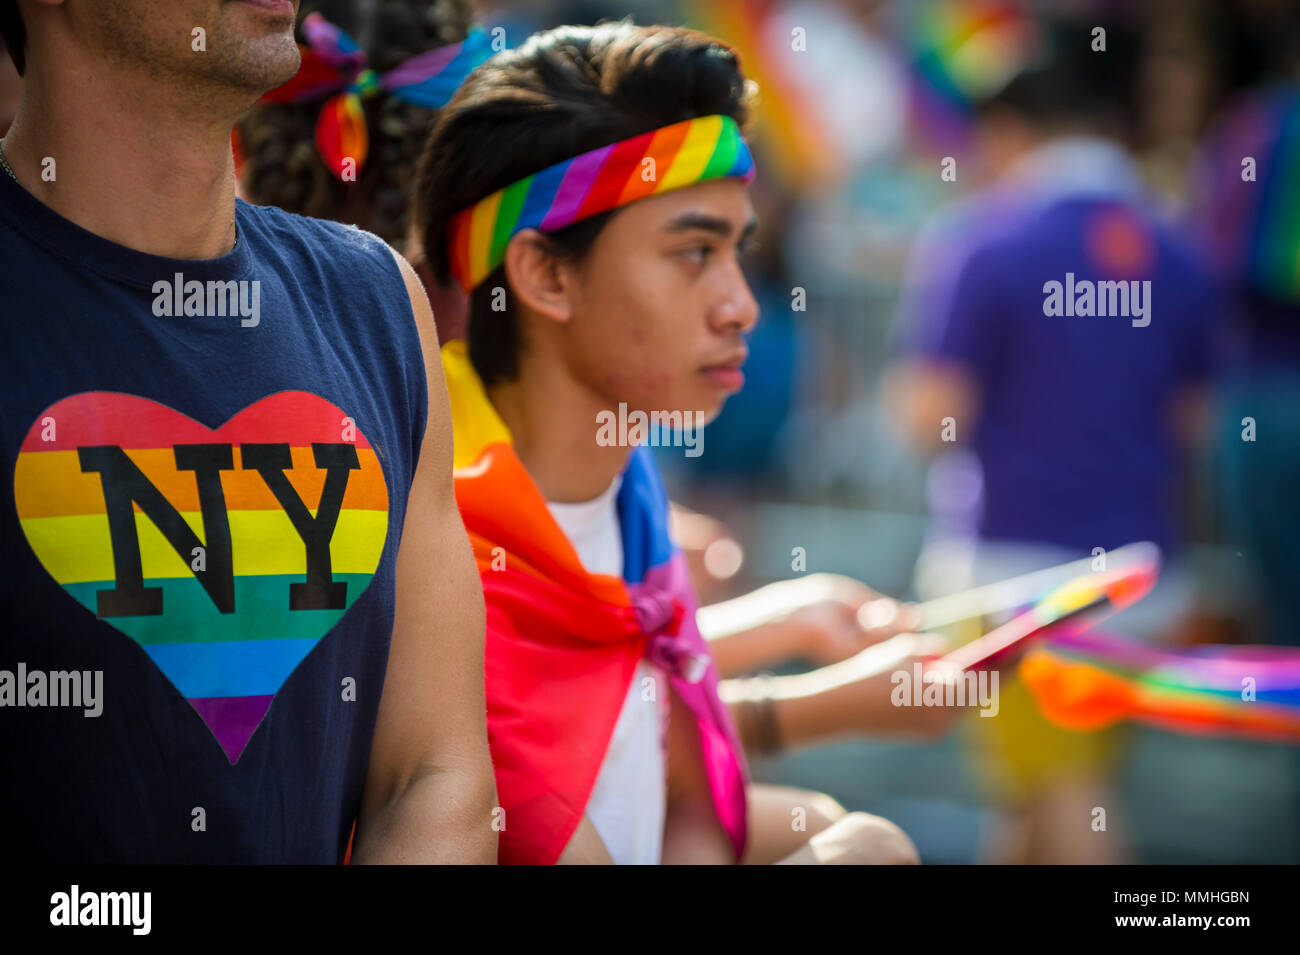 NEW YORK CITY - JUNE 25, 2017: Supporters wave rainbows flags and wear heart NY t-shirt on the sidelines of the Pride Parade in Greenwich Village. - Stock Image